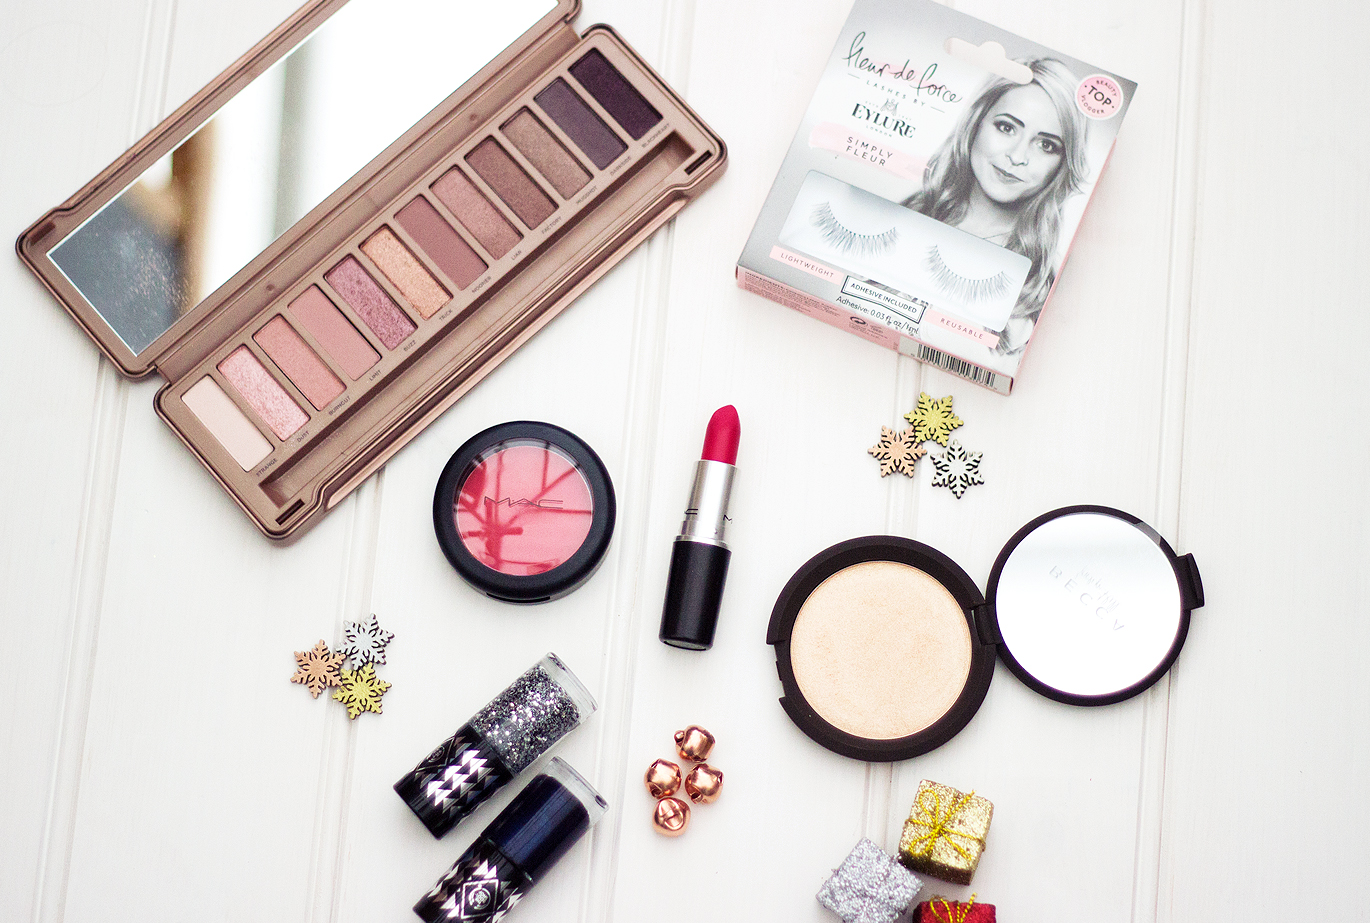 Christmas Party Glamour featuring MAC, Urban Decay, Becca, Body Shop and Eylur